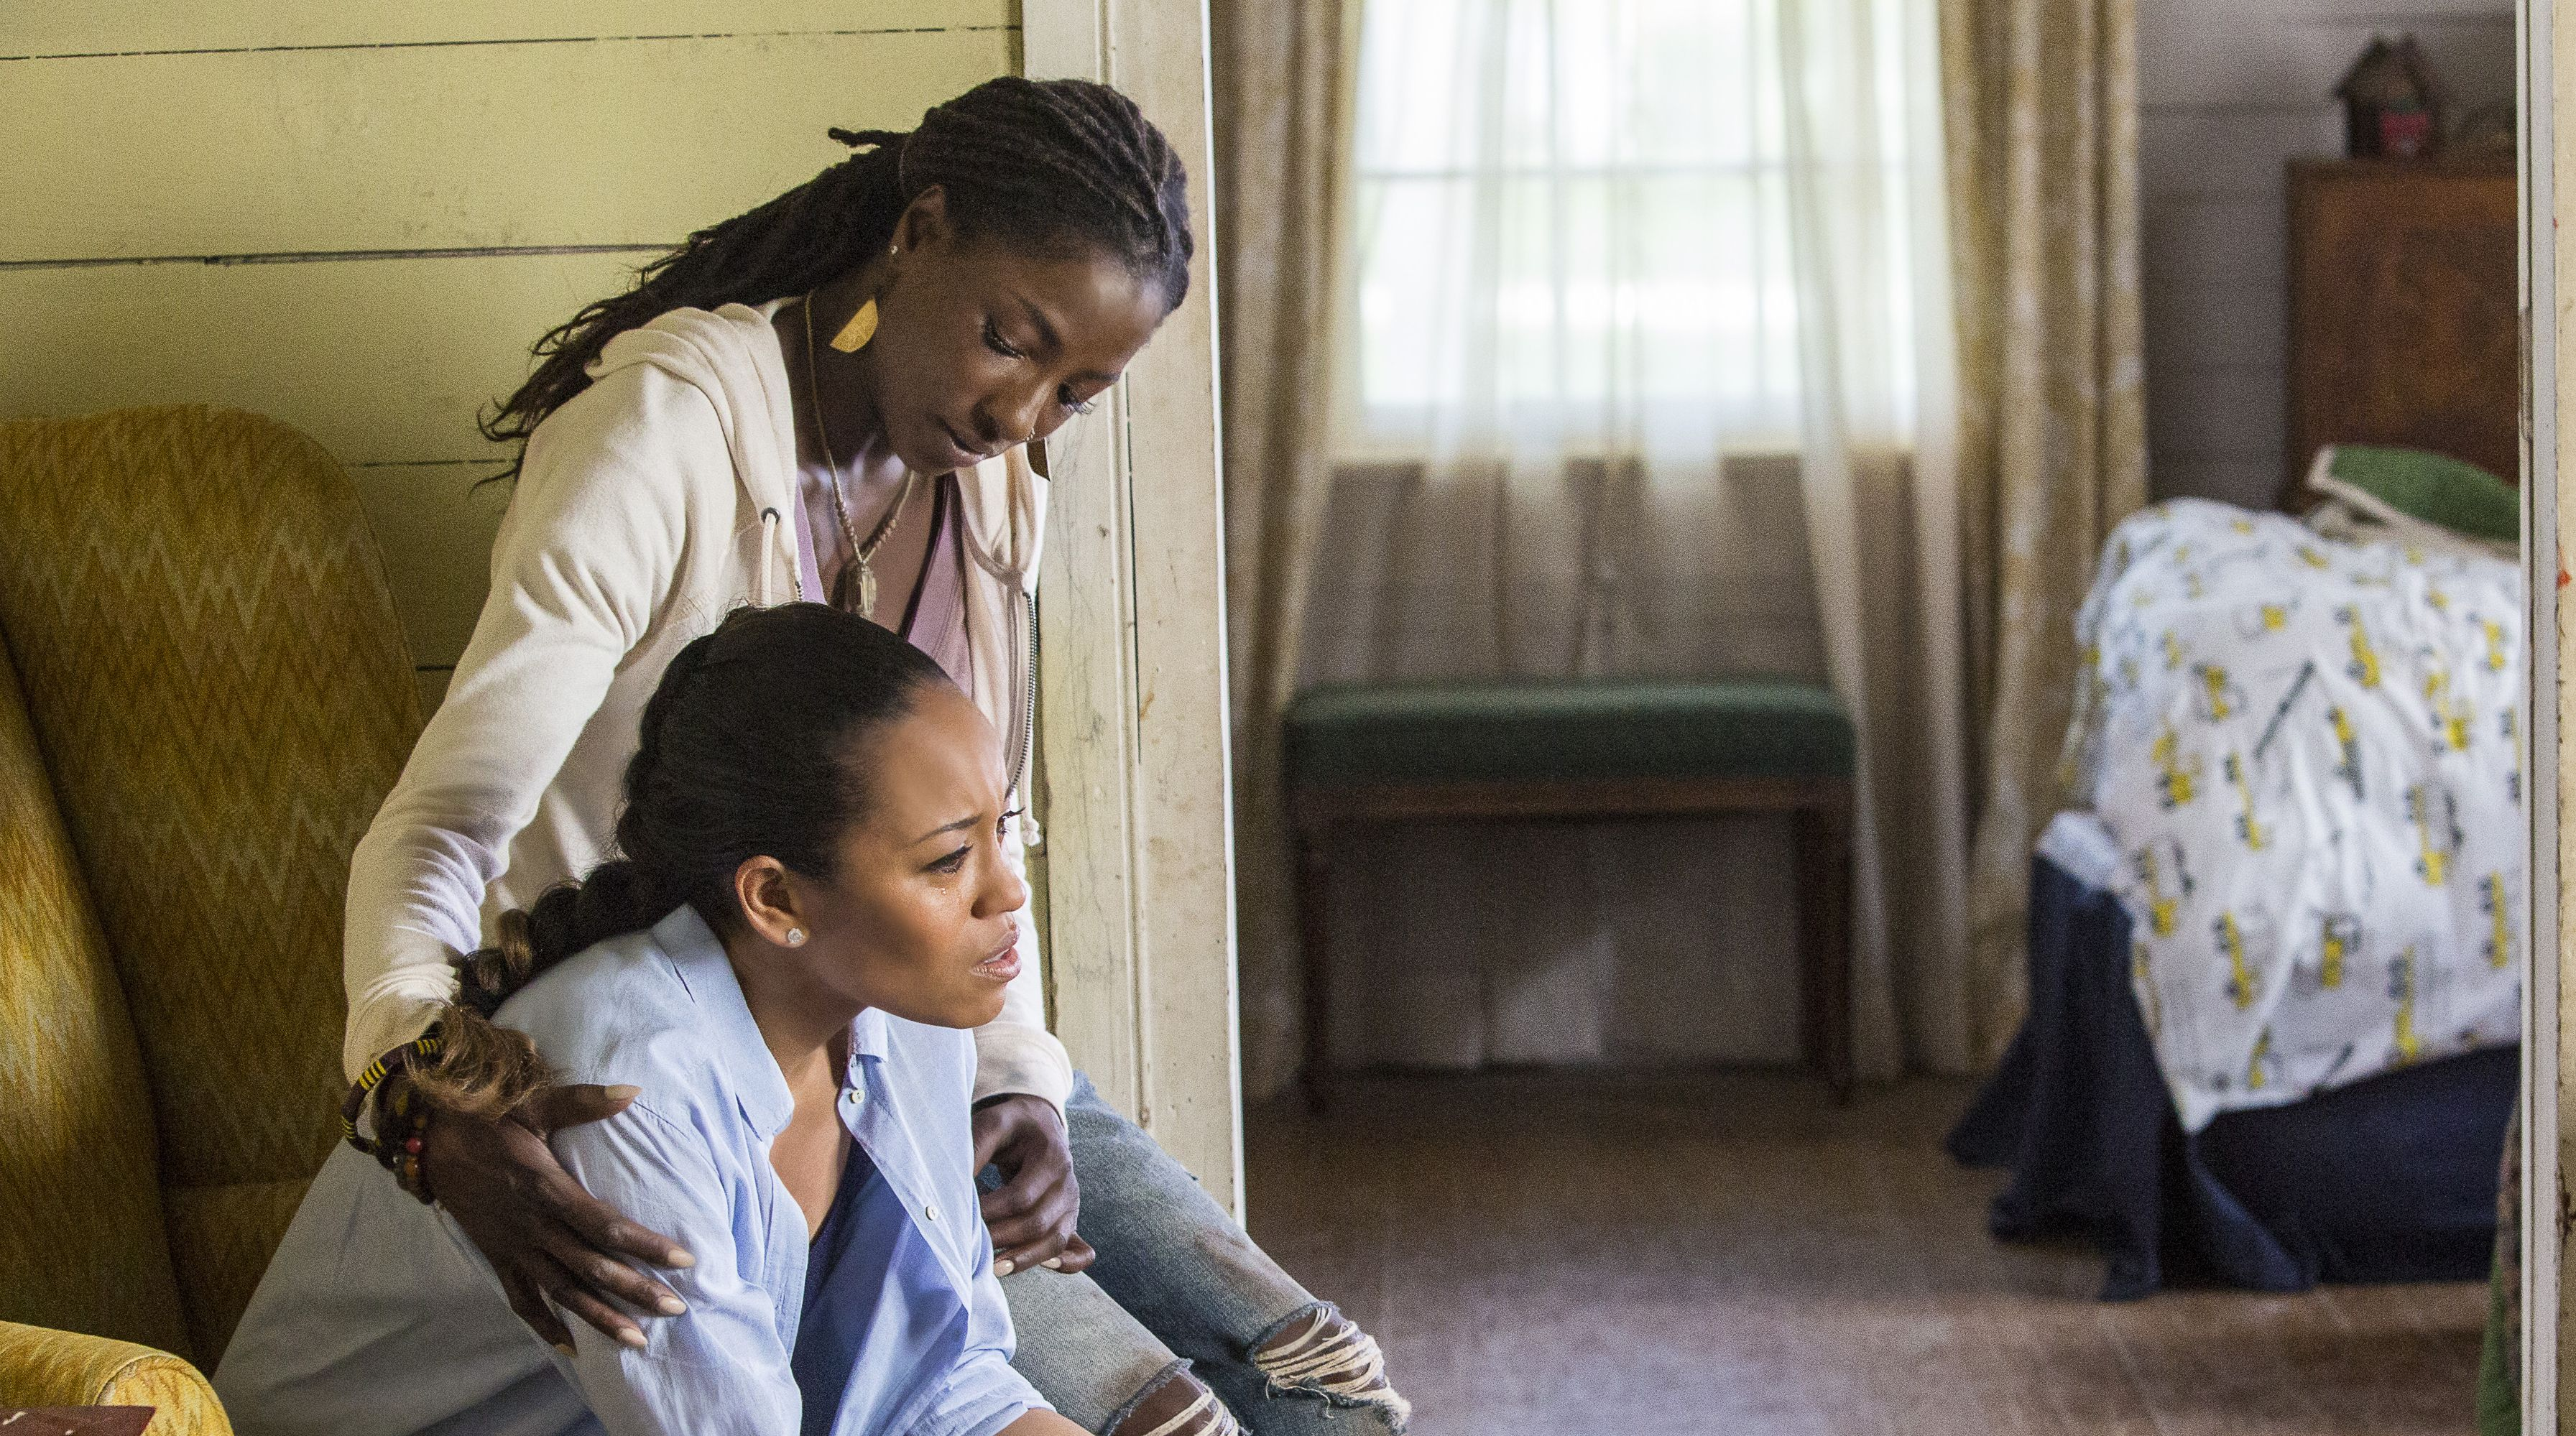 And we're back. We're now recapping a show, Queen Sugar, you all seem to like, if you have OWN, which is still and issue. (Note to Oprah: Please give us cable cutters a standalone app …